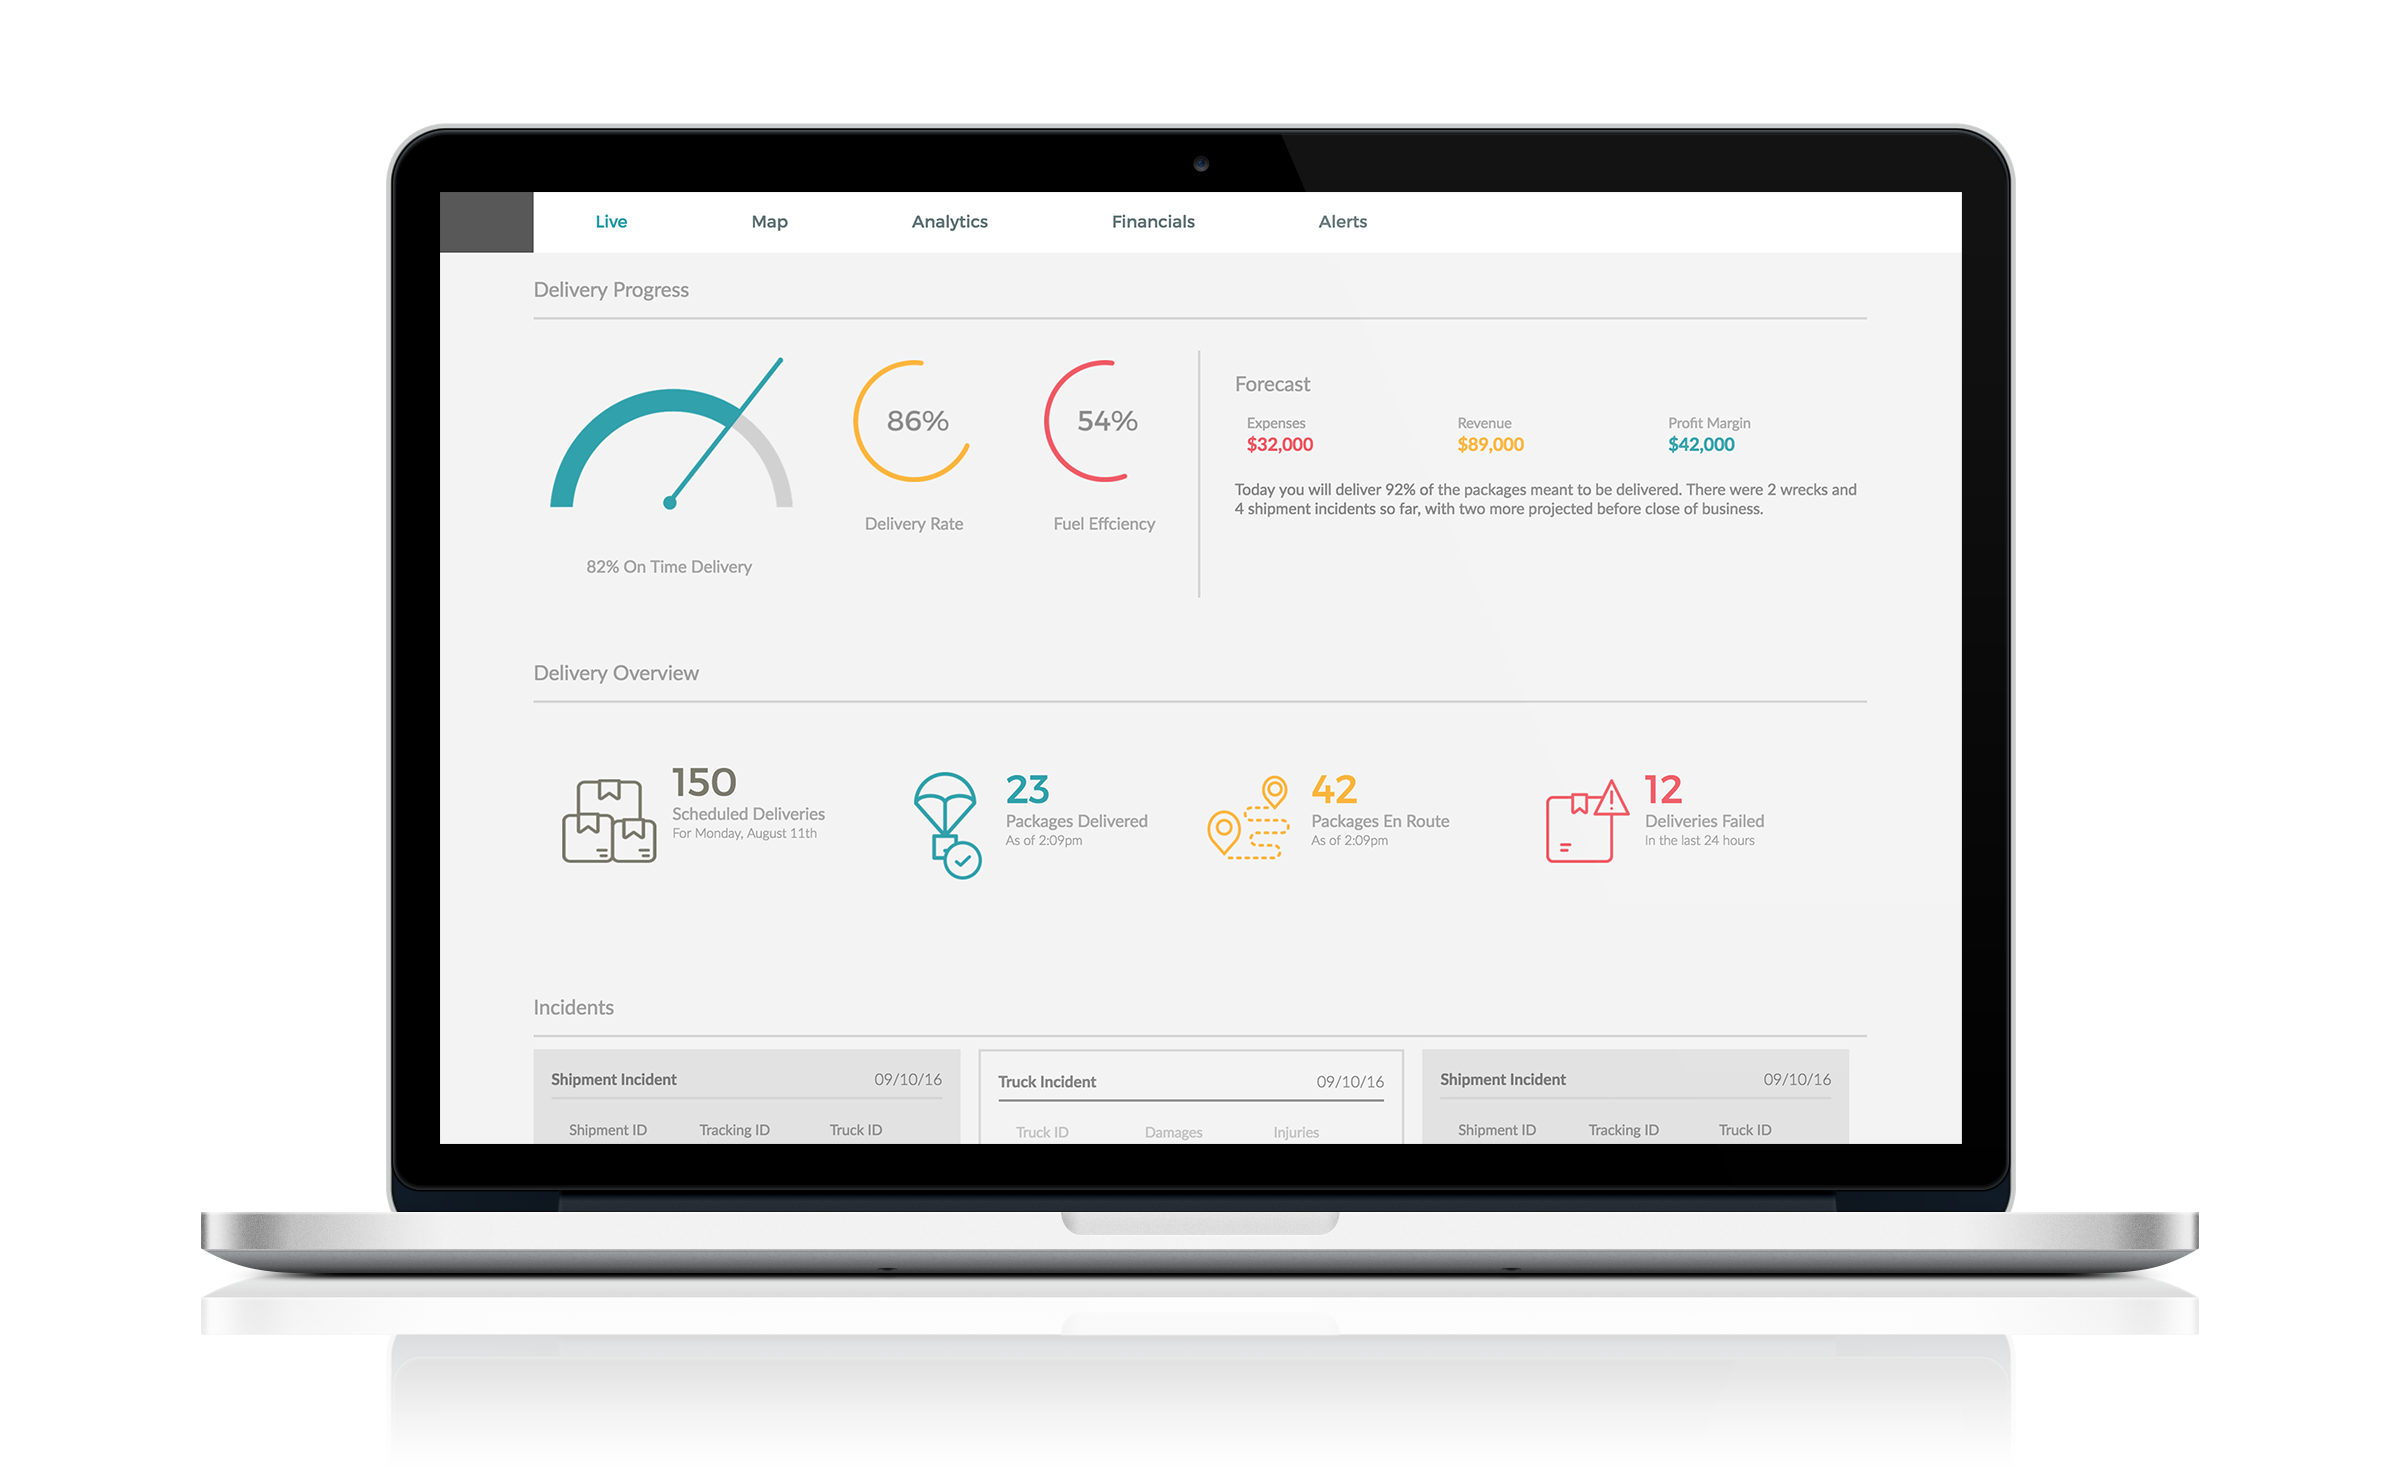 Asset Management Internet of Things Dashboard